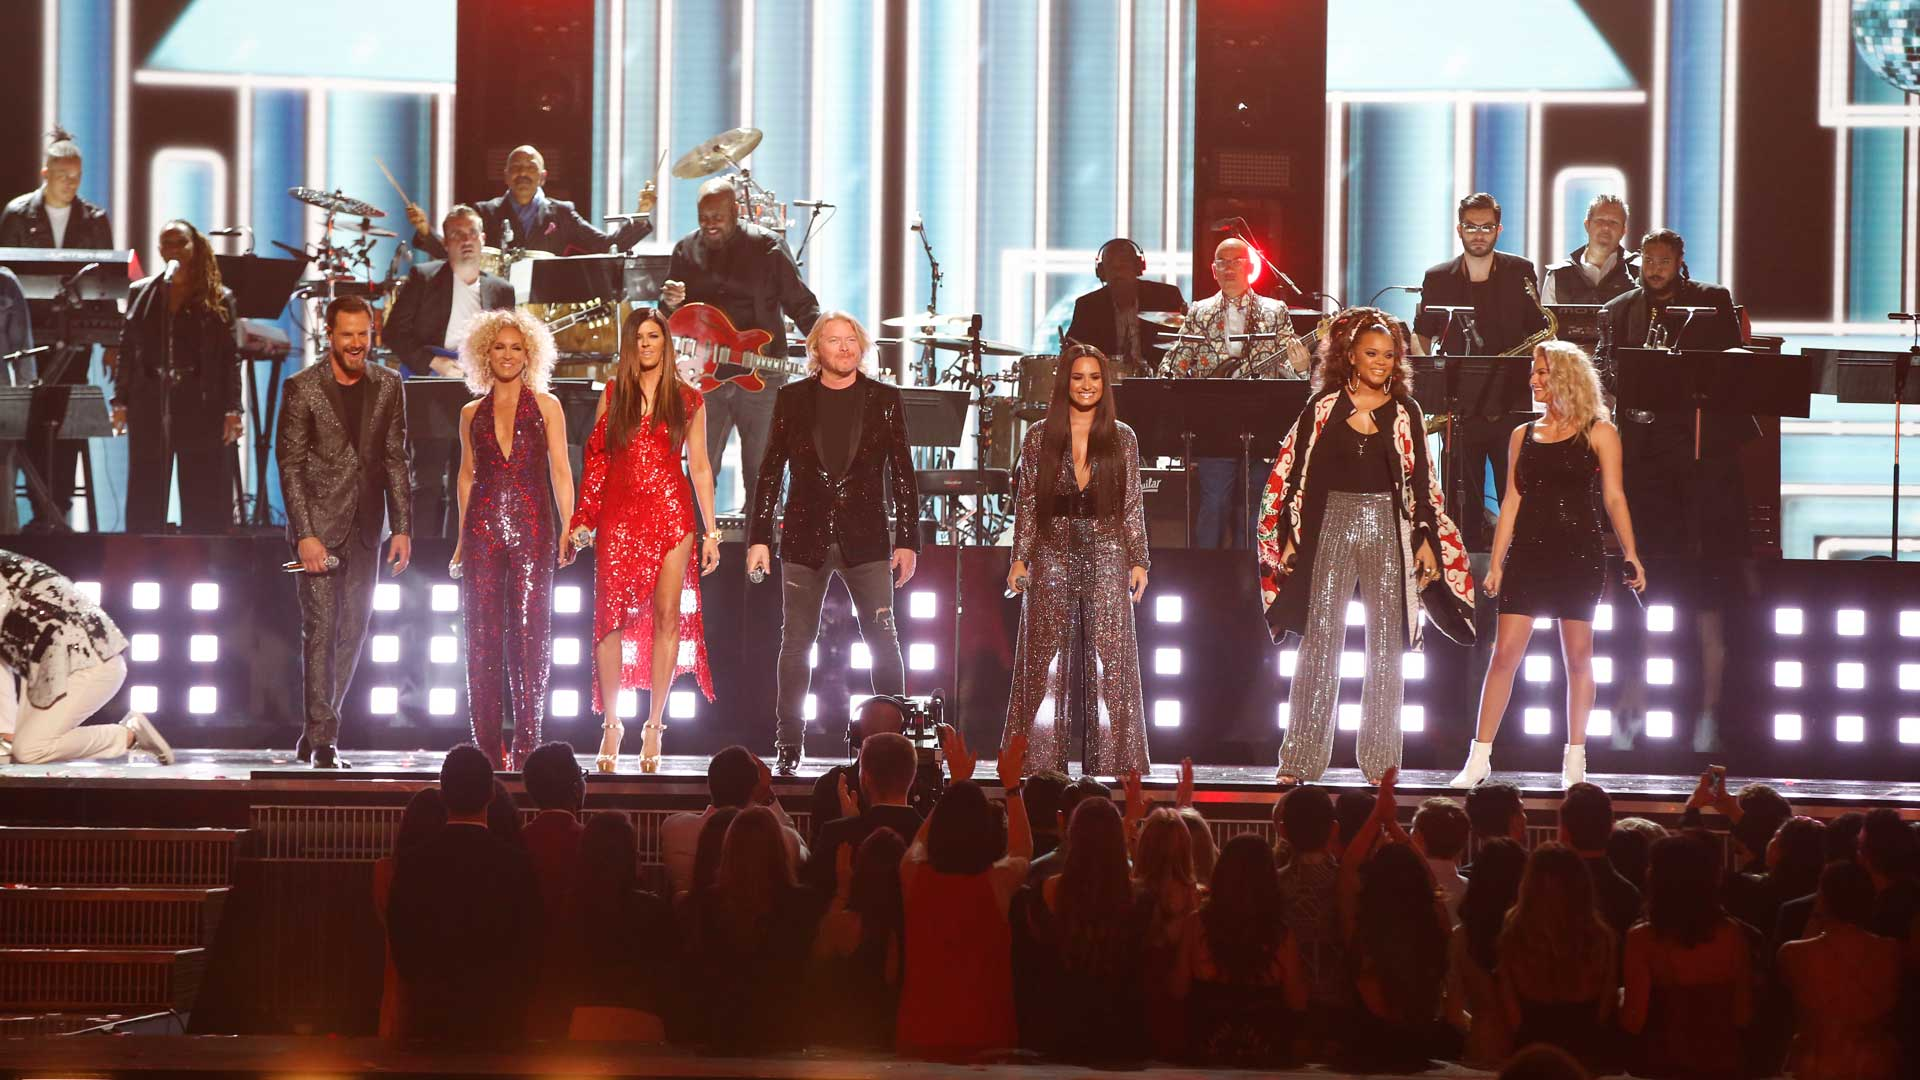 Demi Lovato, Tori Kelly, Little Big Town, and Andra Day perform a tribute to The Bee Gees at the 2017 GRAMMY Awards.